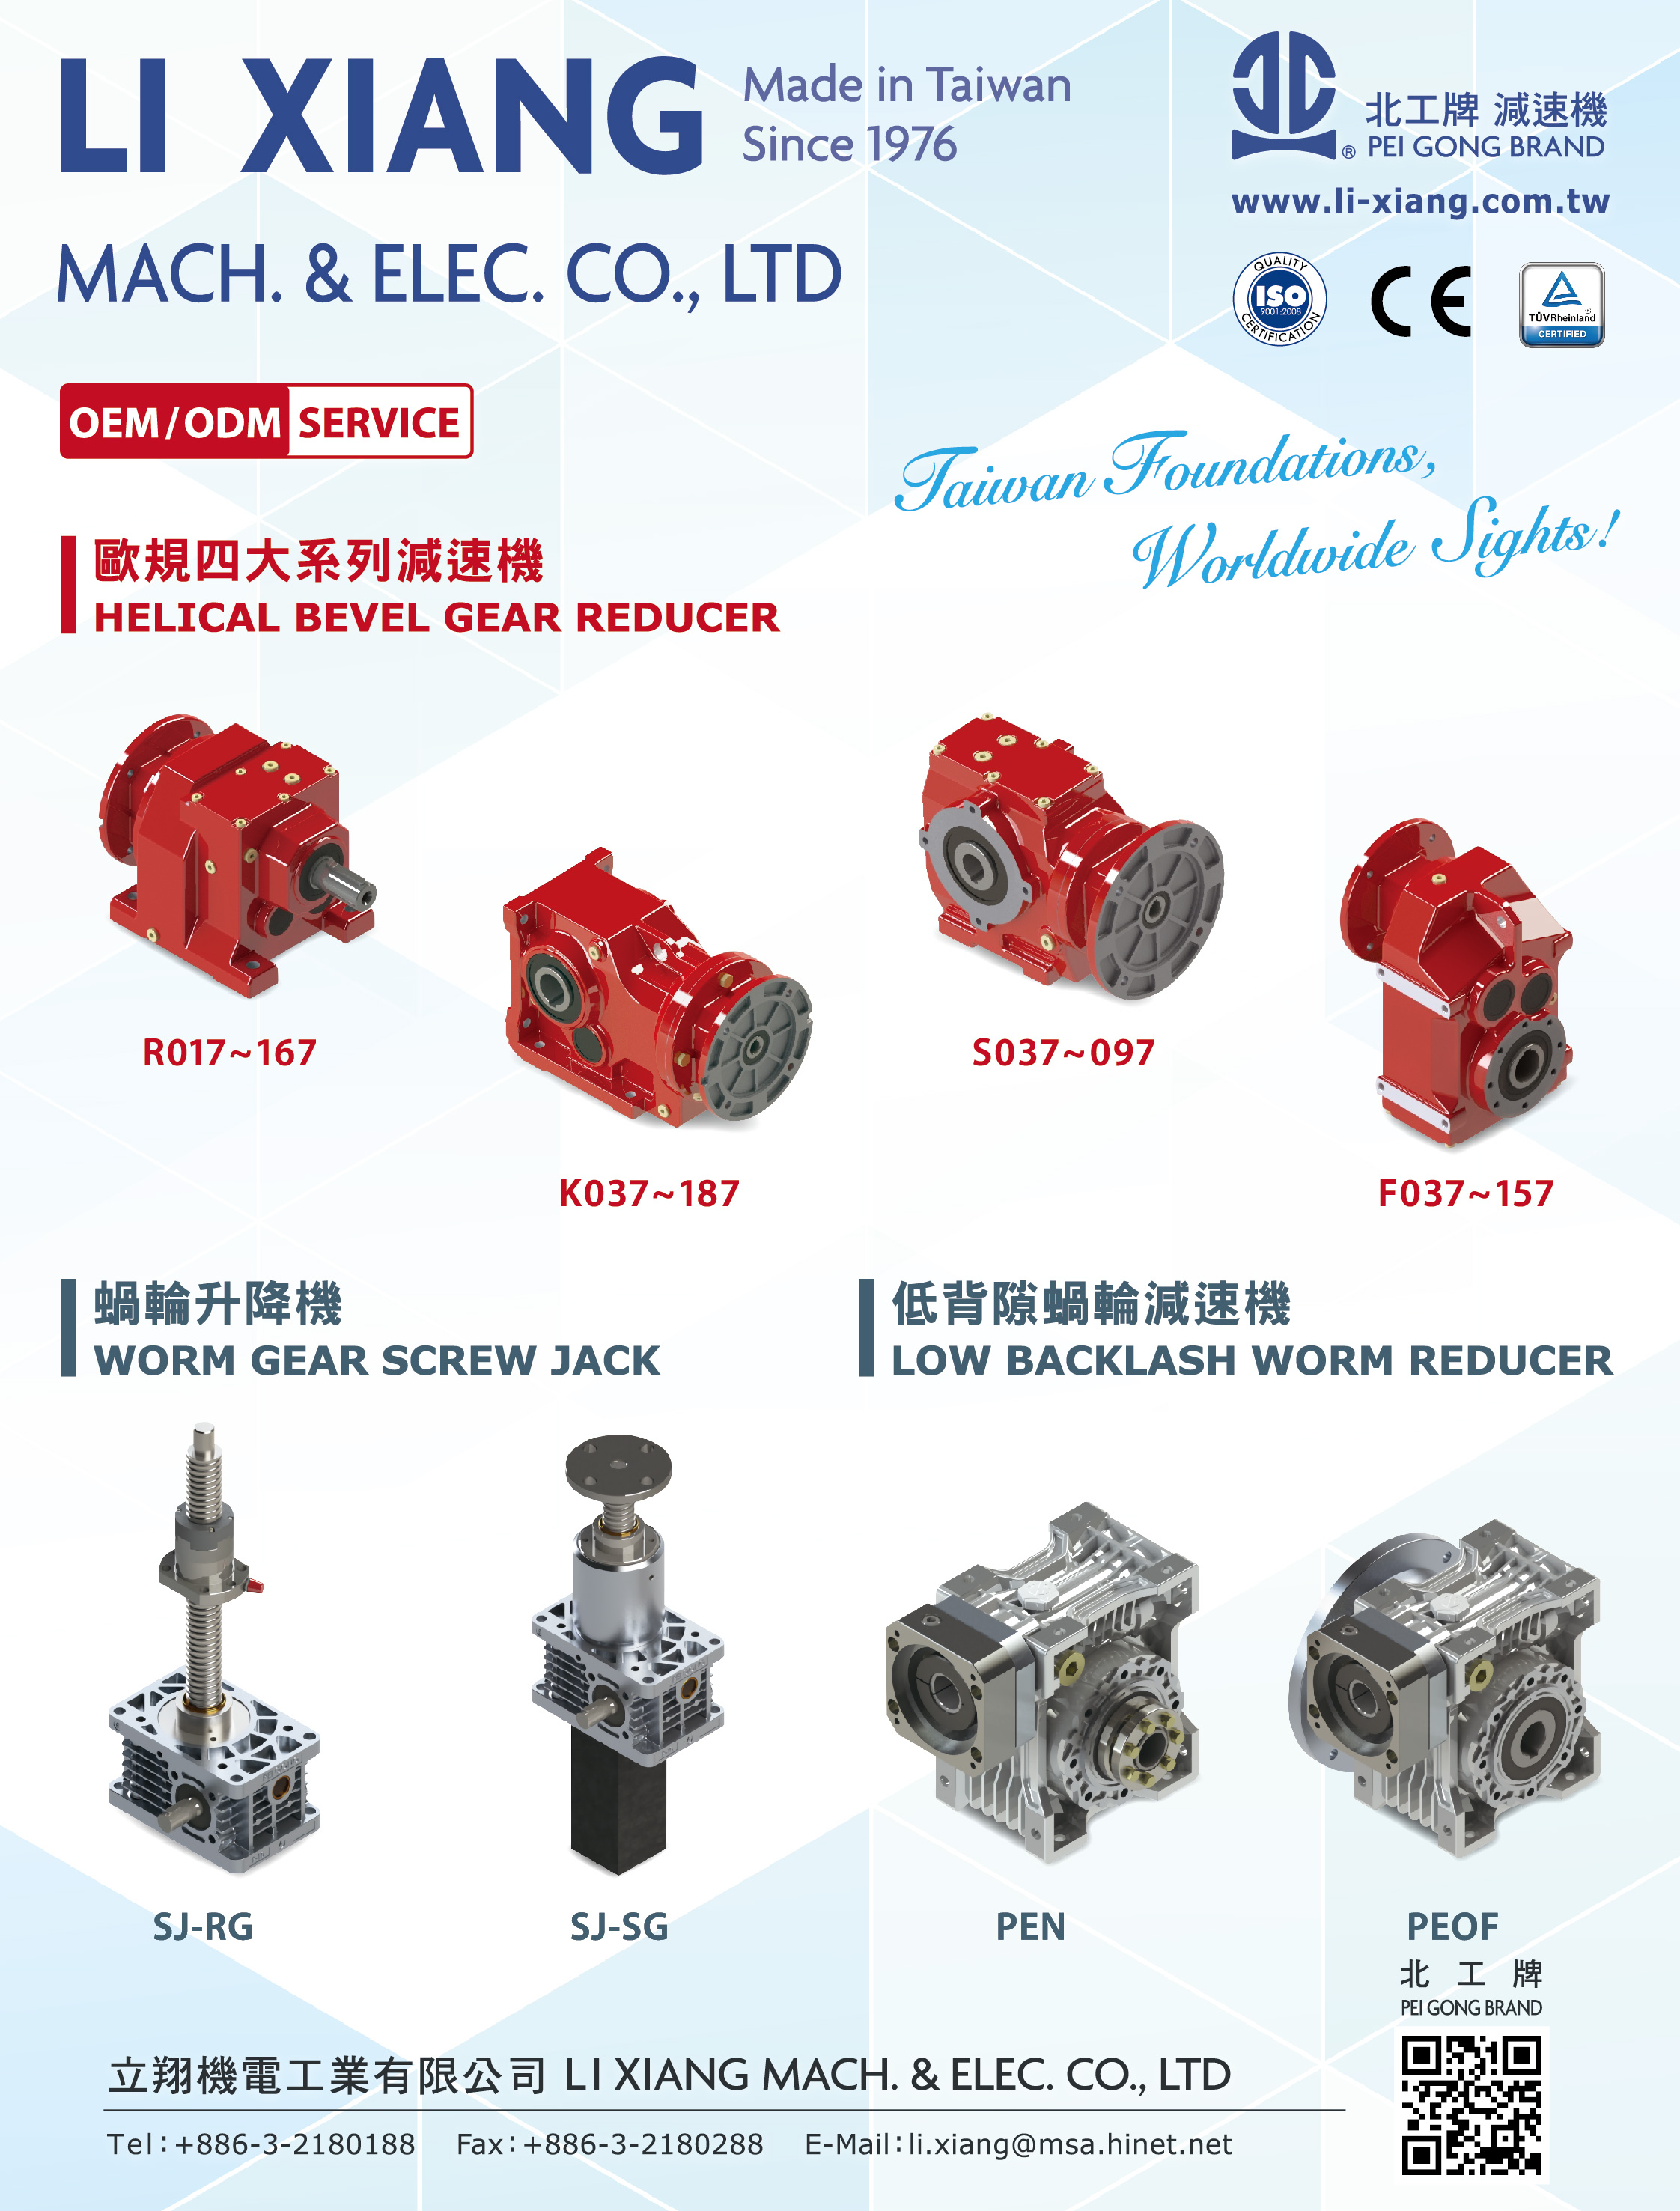 LI - XIANG MACH. & ELEC. CO., LTD.